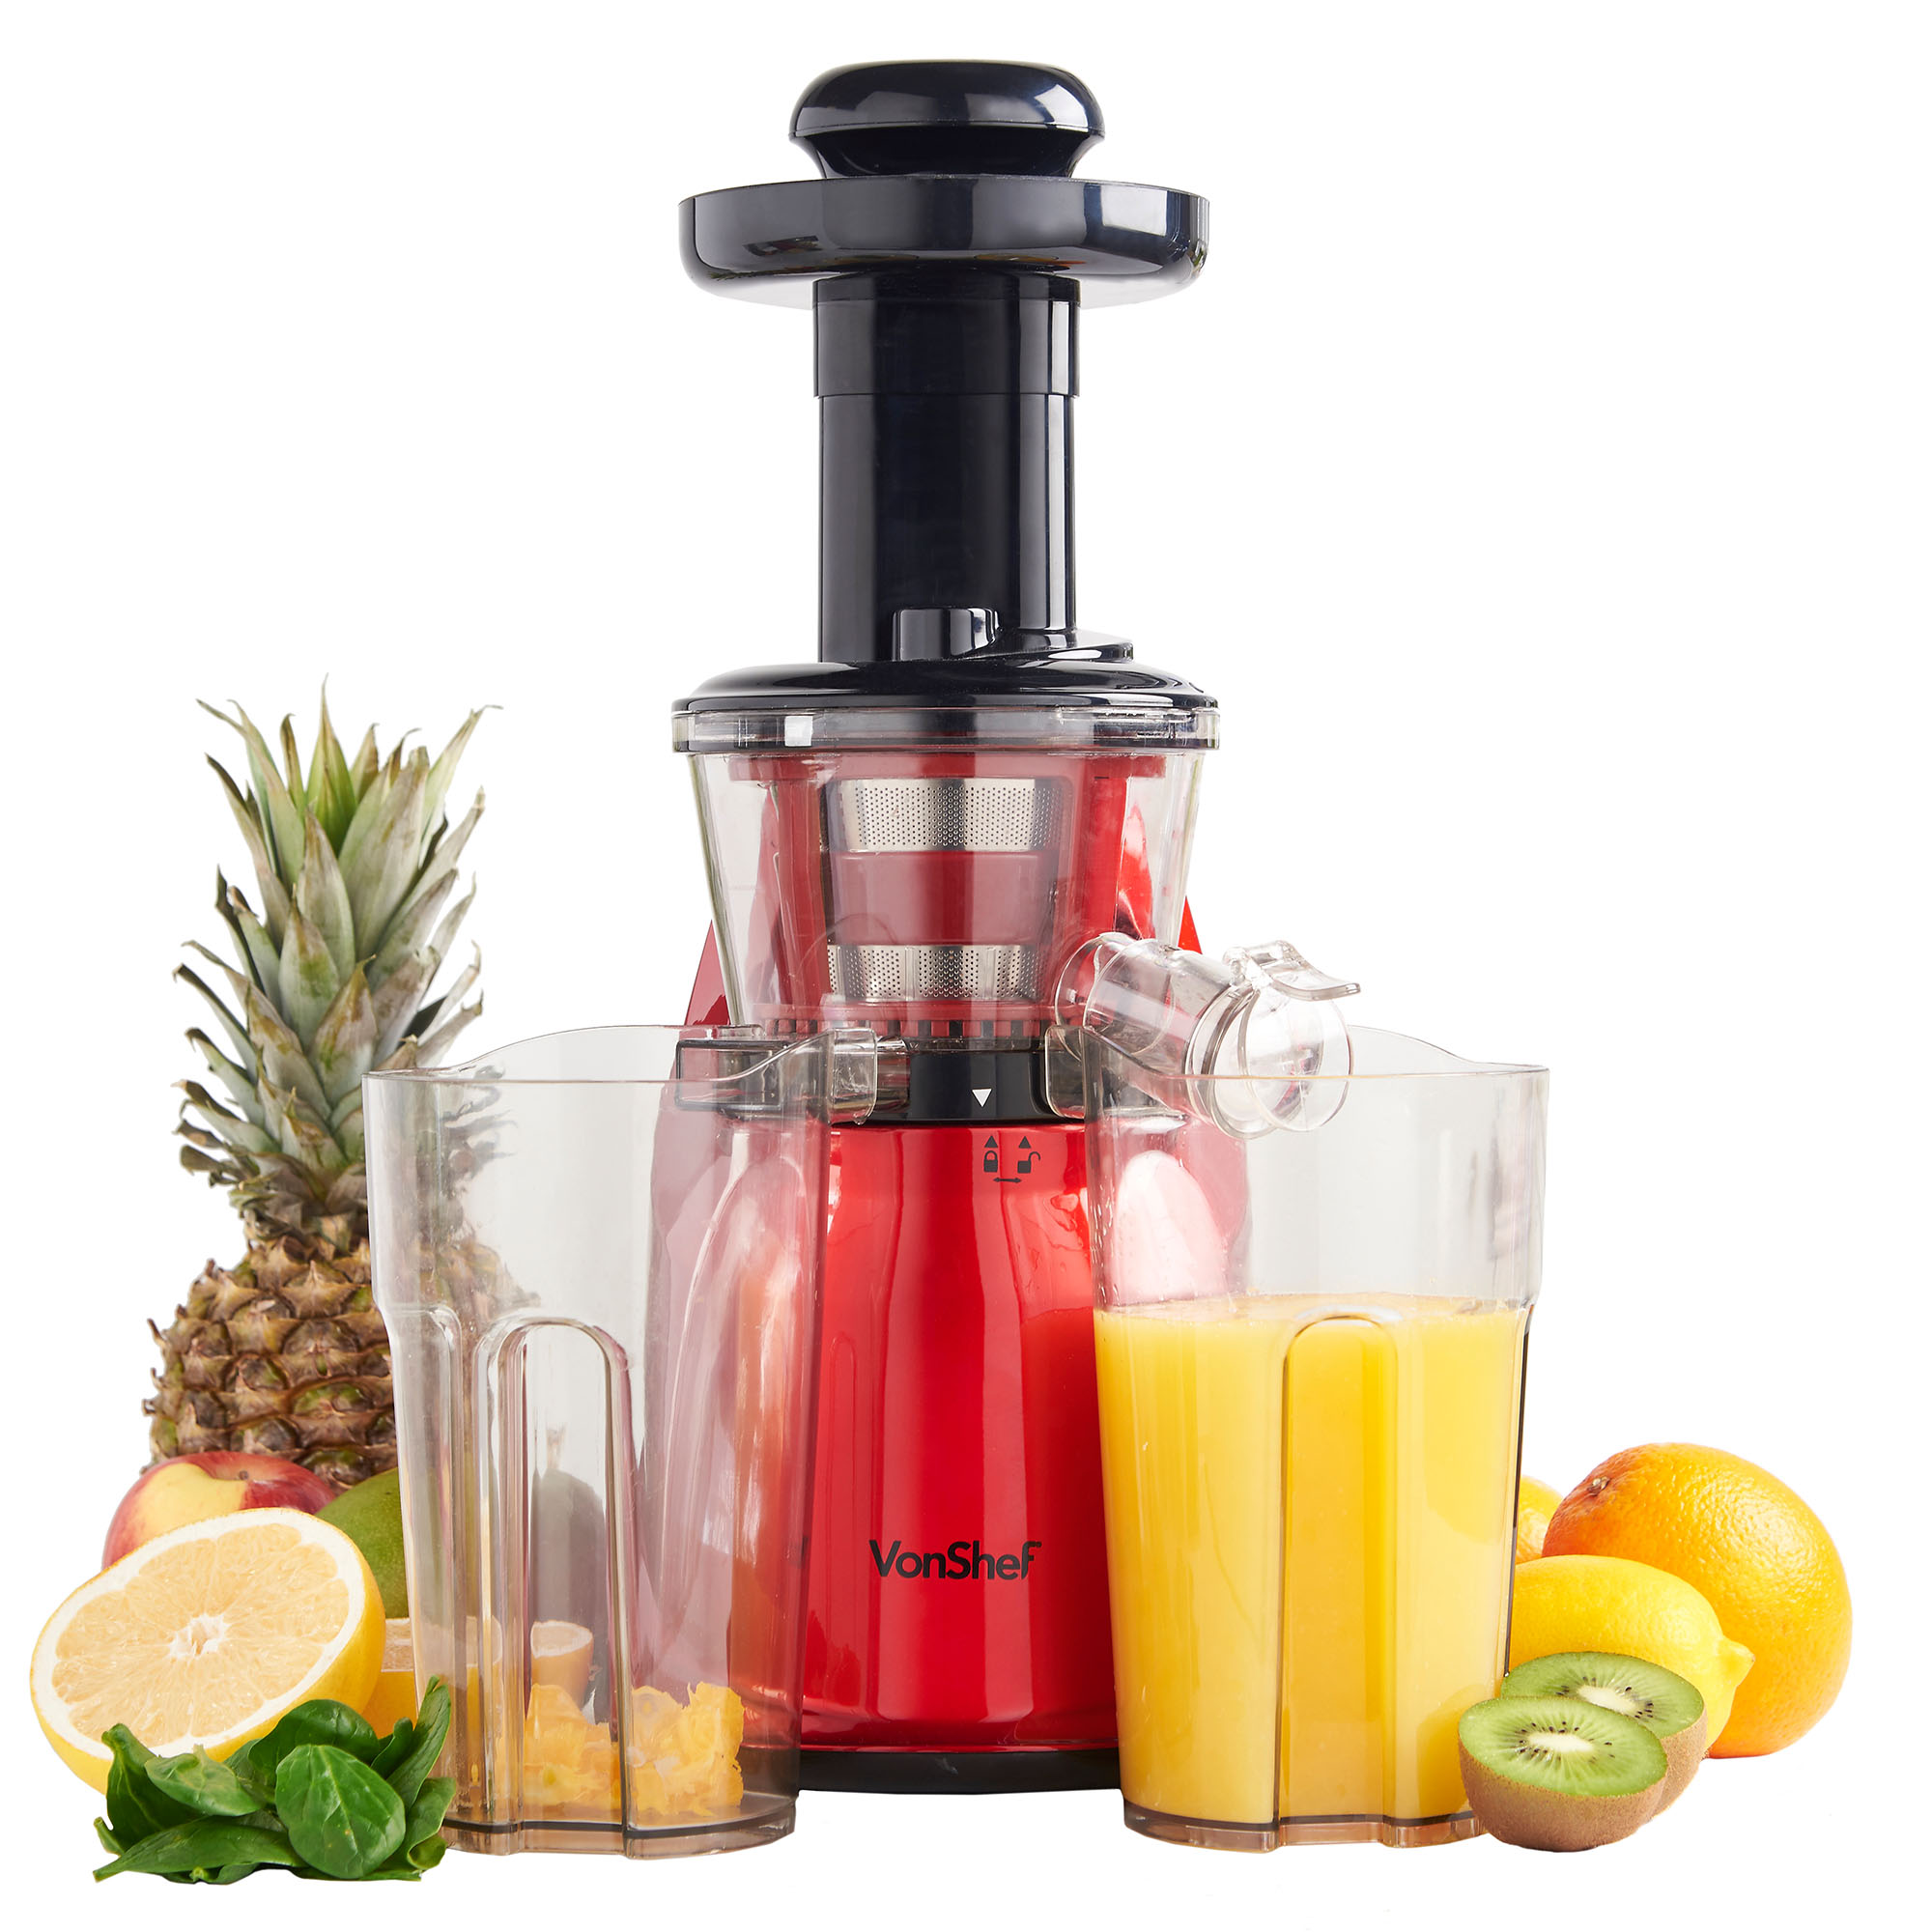 Vonshef Wheatgrass Fruit Vegetable Juicer Slow Masticating Juice Extractor : vonShef Premium Slow Masticating Juicer Electric vegetable ...